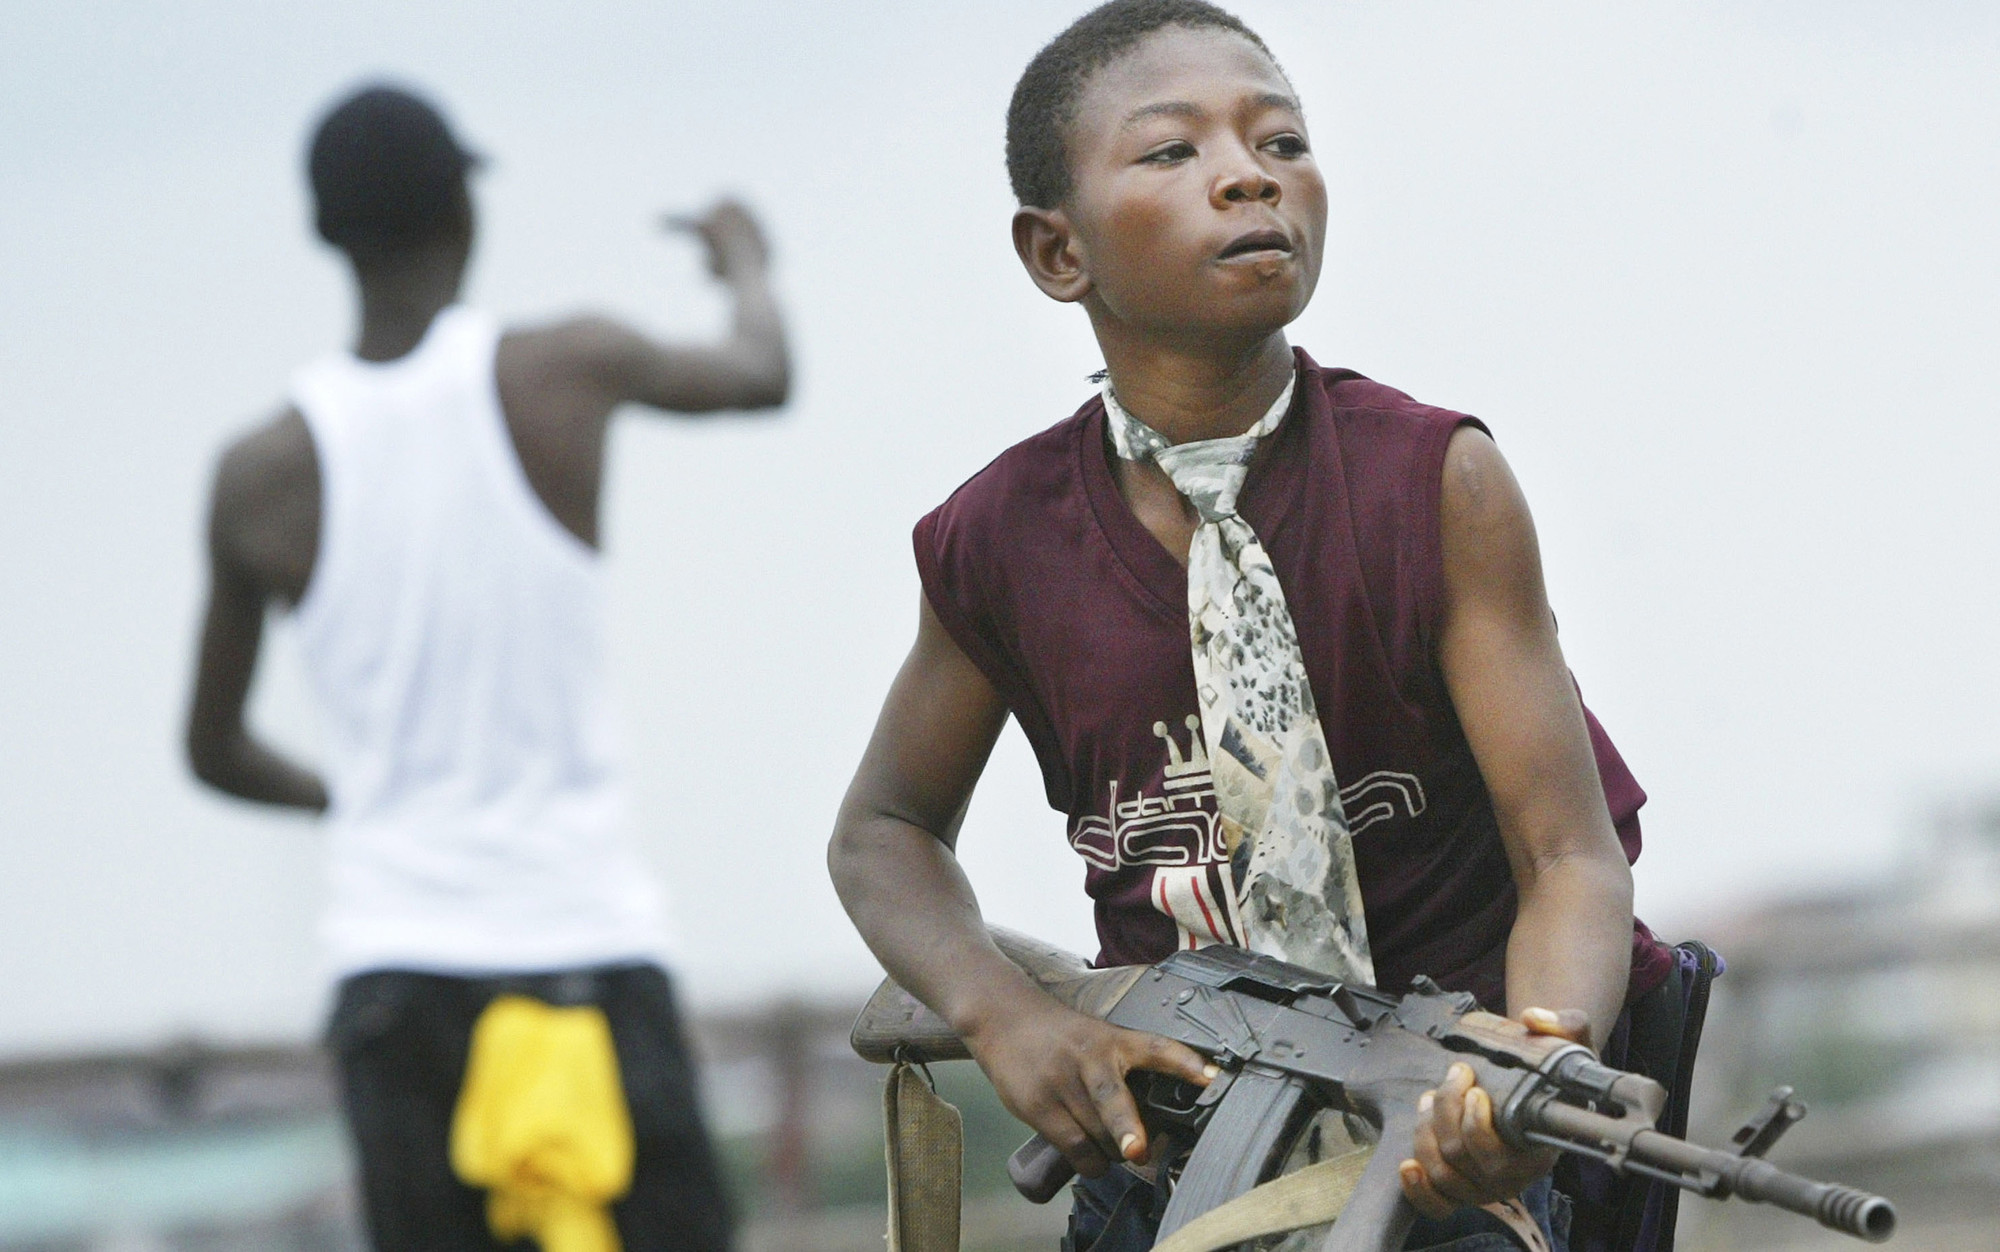 human rights child soldiers essay Read statistics regarding human rights violations in areas of child abuse, gang violence, child labor, human trafficking and child soldiers human rights abuses.